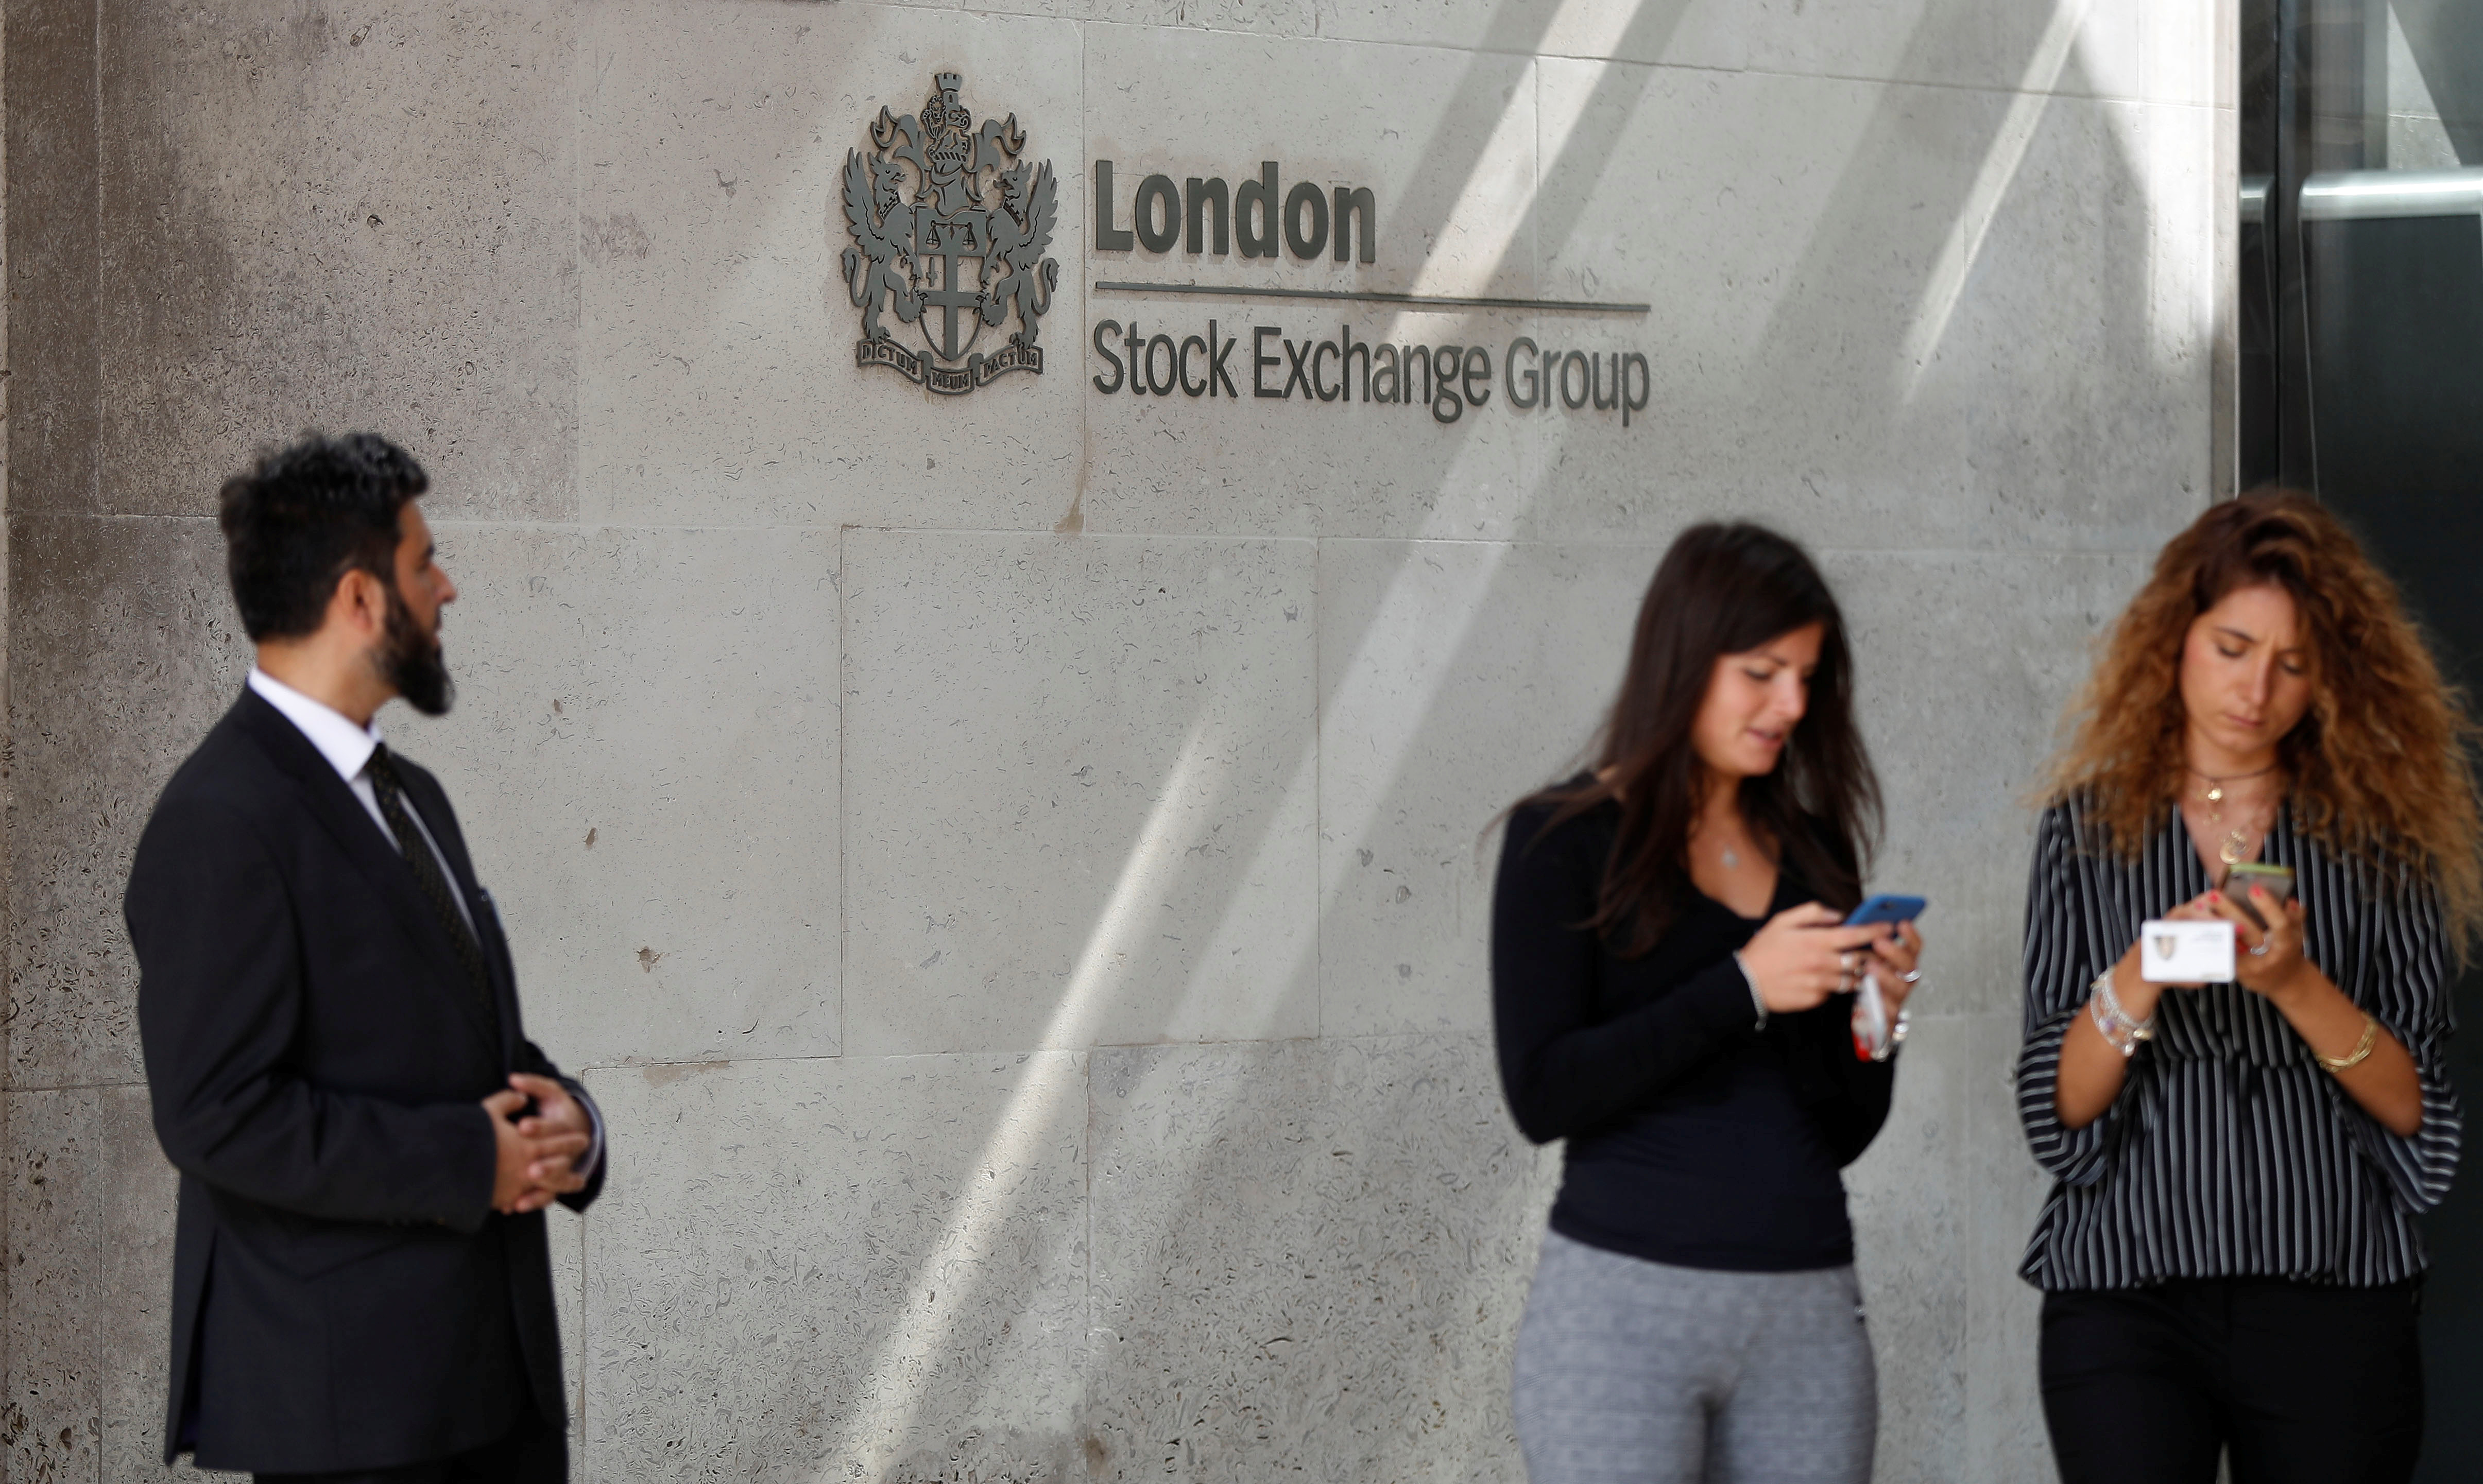 People check their mobile phones as they stand outside the entrance of the London Stock Exchange in London, Britain. Aug 23, 2018. REUTERS/Peter Nicholls